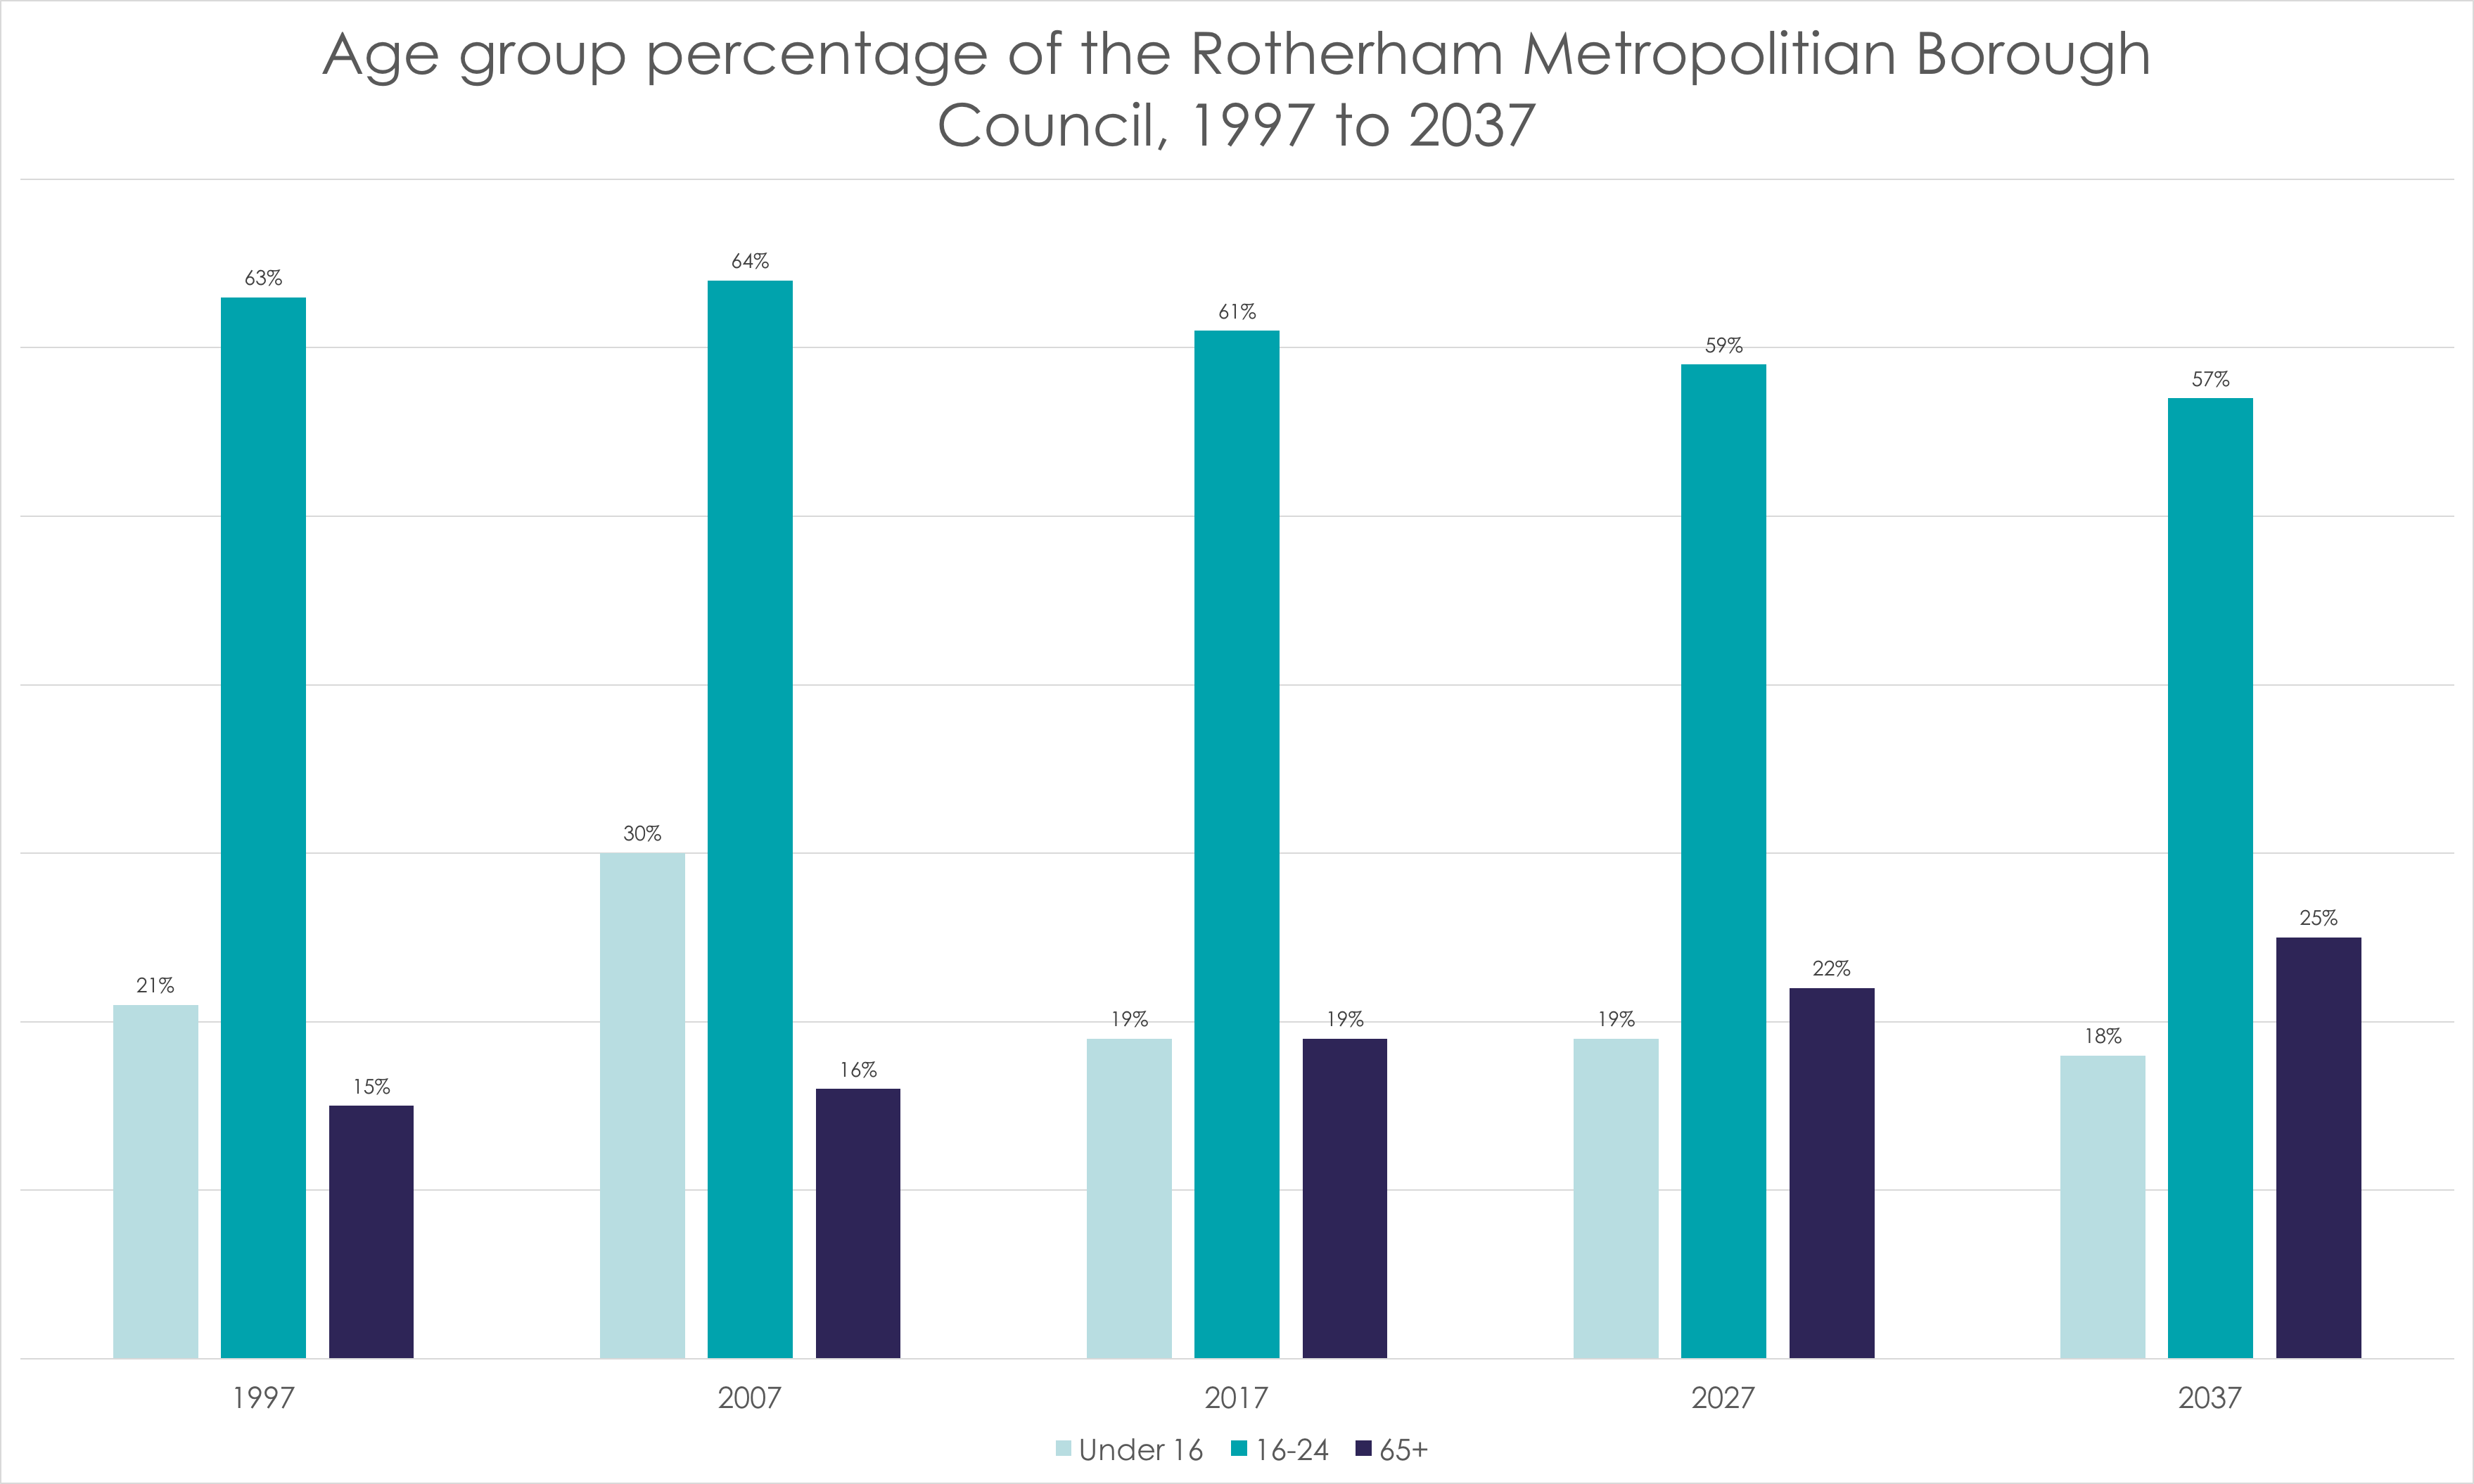 Age group percentage of the Rotherham Metropolitan Borough Council, 1997 to 2037